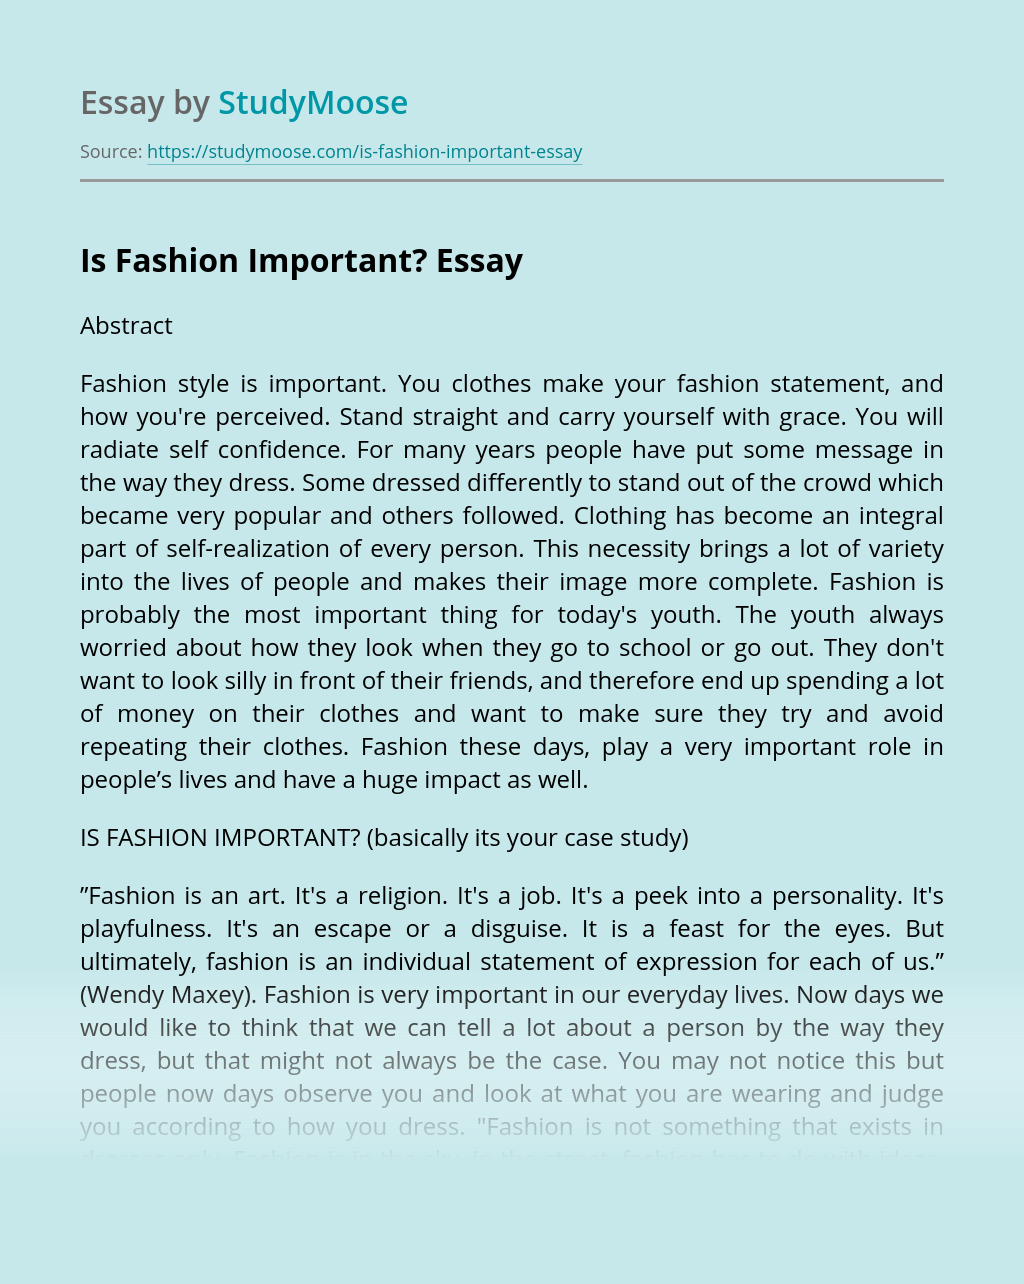 Is Fashion Important?